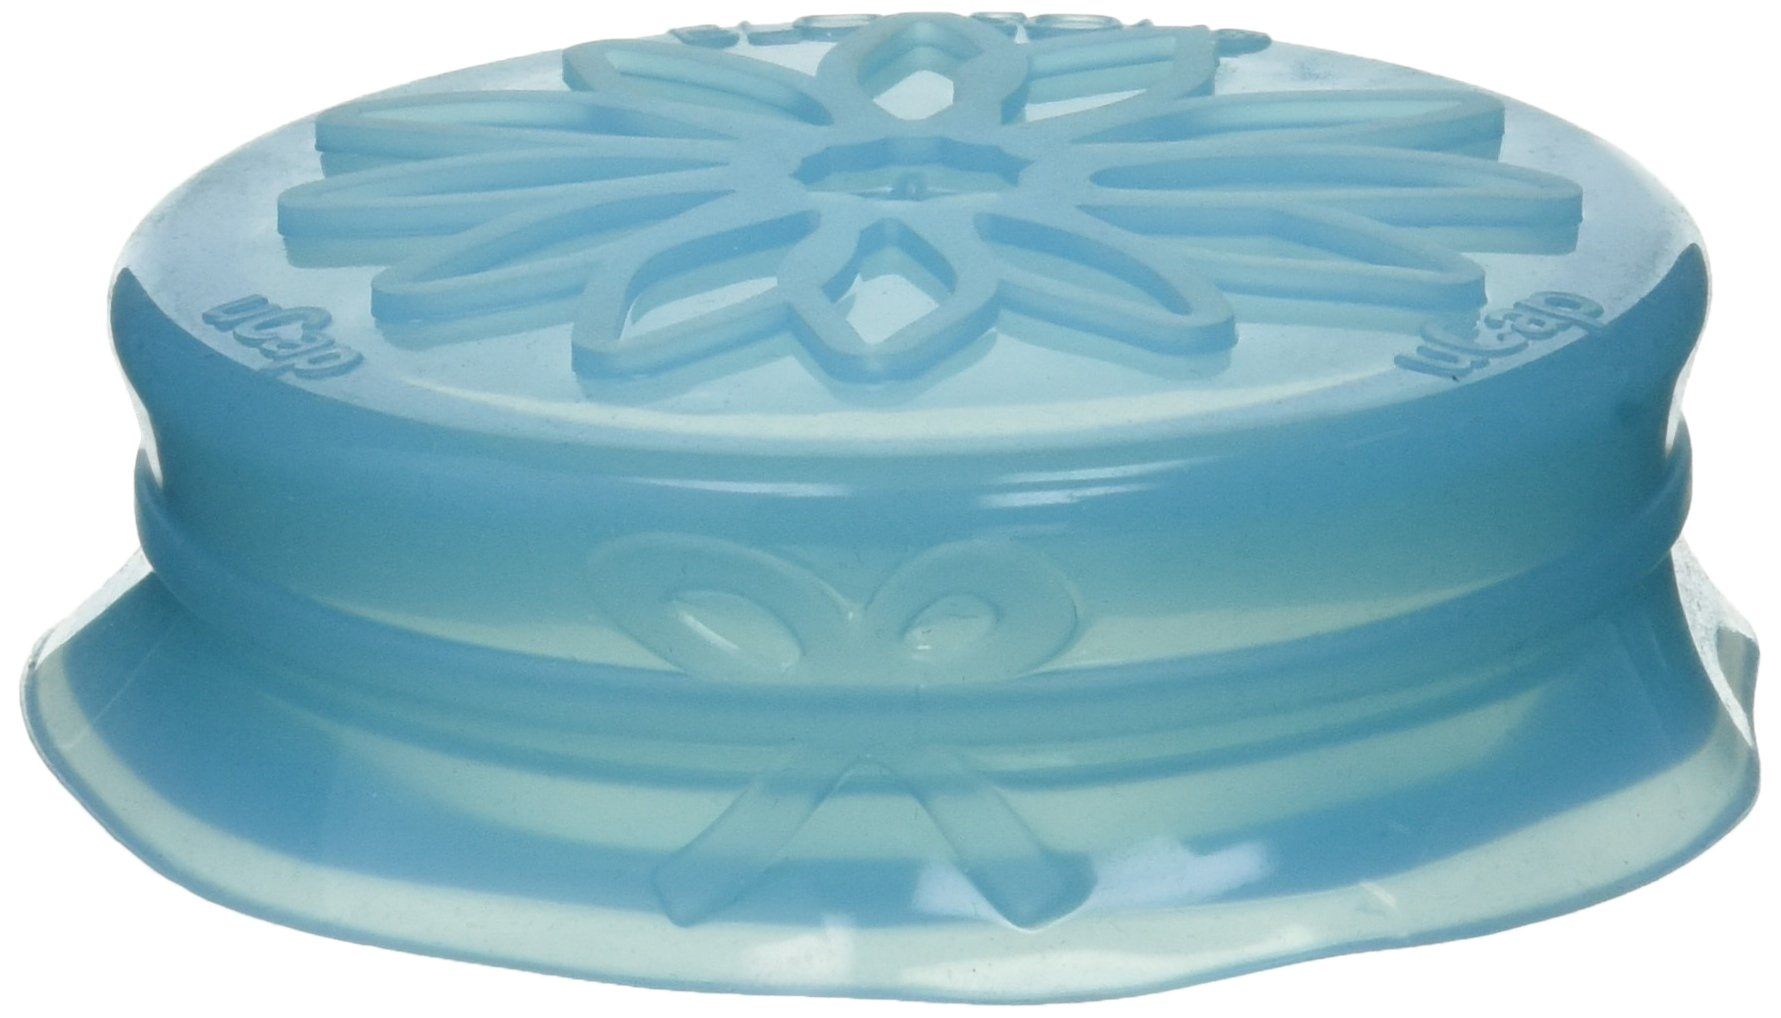 Blossom Mason and Canning Jar Sipping and Drinking Lid Caps, Silicone, For Standard Size Mason Jars, 3.5-Inches; Blue; 1-Lid